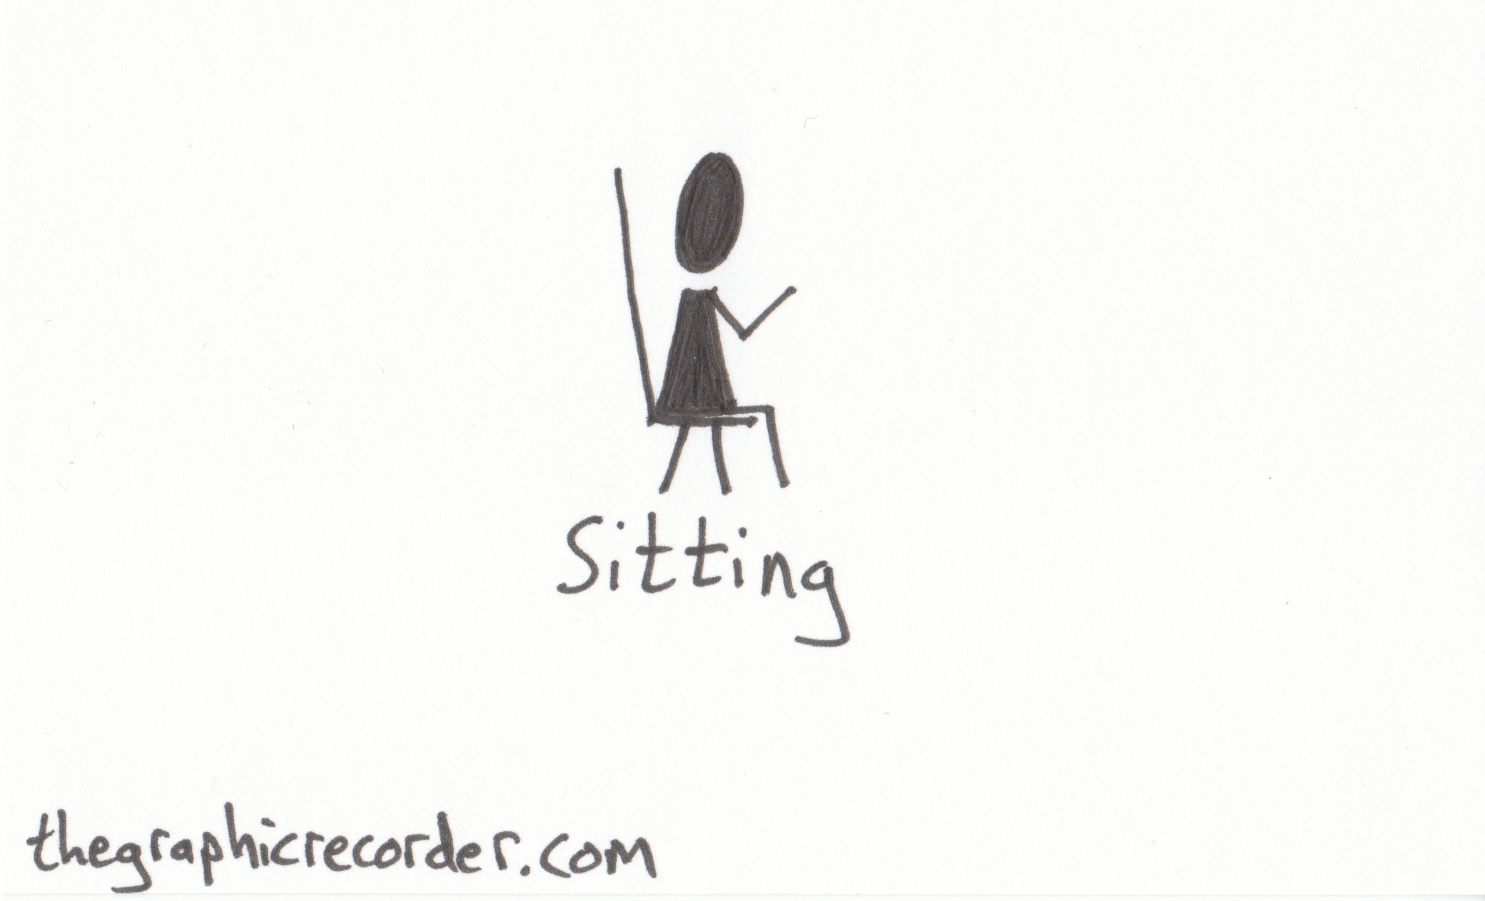 The graphic recorder visual vocabulary stick figure sketch of a person sitting in a chair